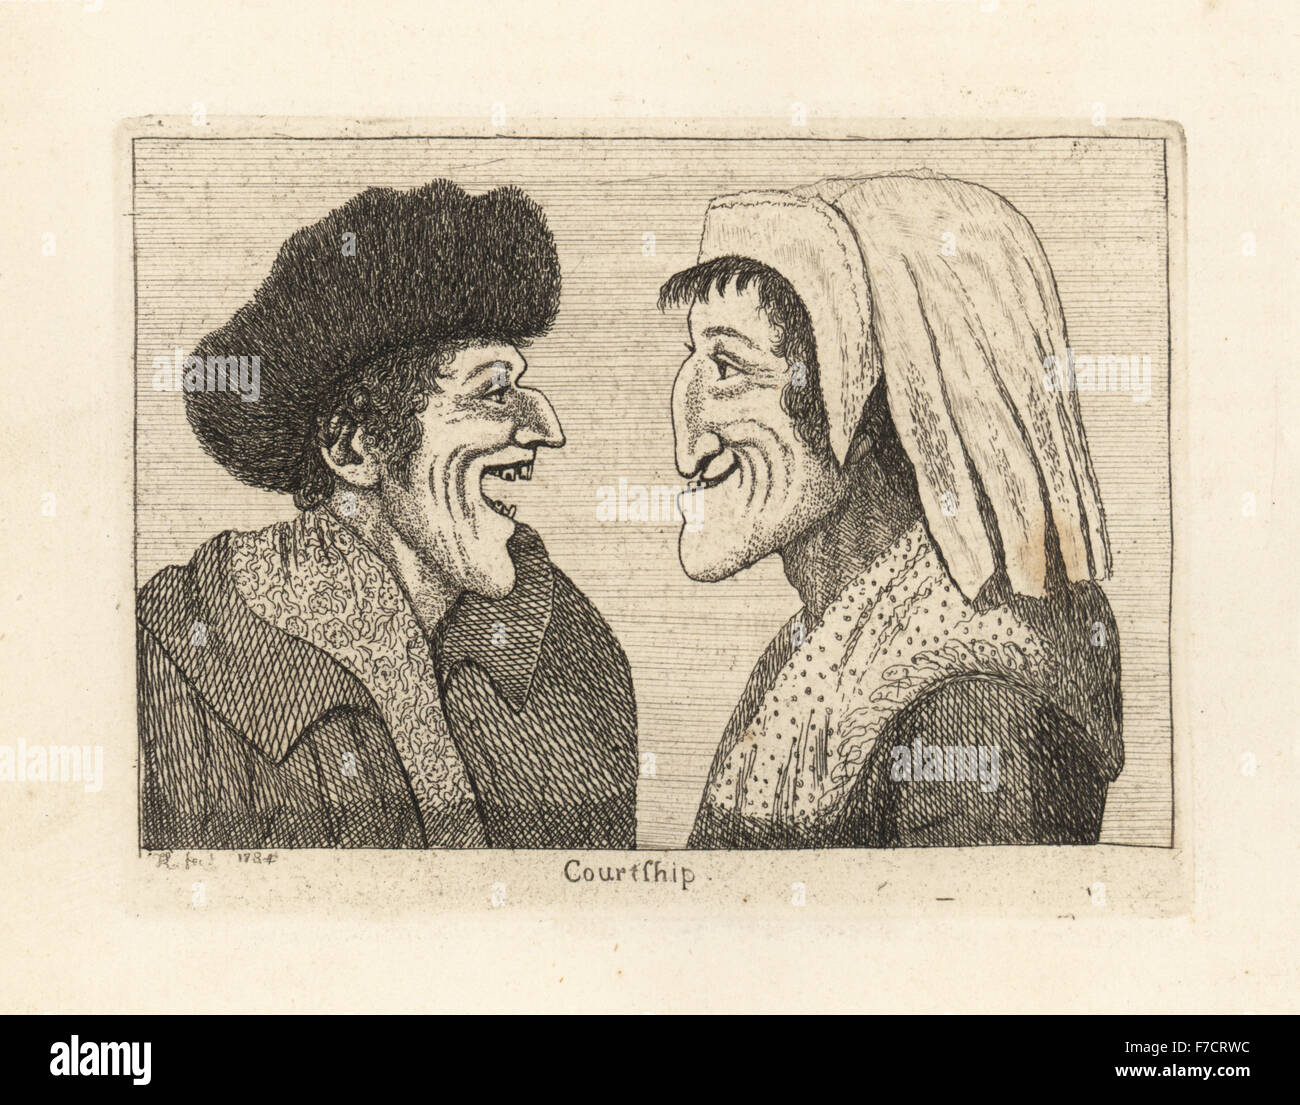 Caricature of a courtship between two lovers. The woman based on an old woman who lived at the head of Canongate. - Stock Image